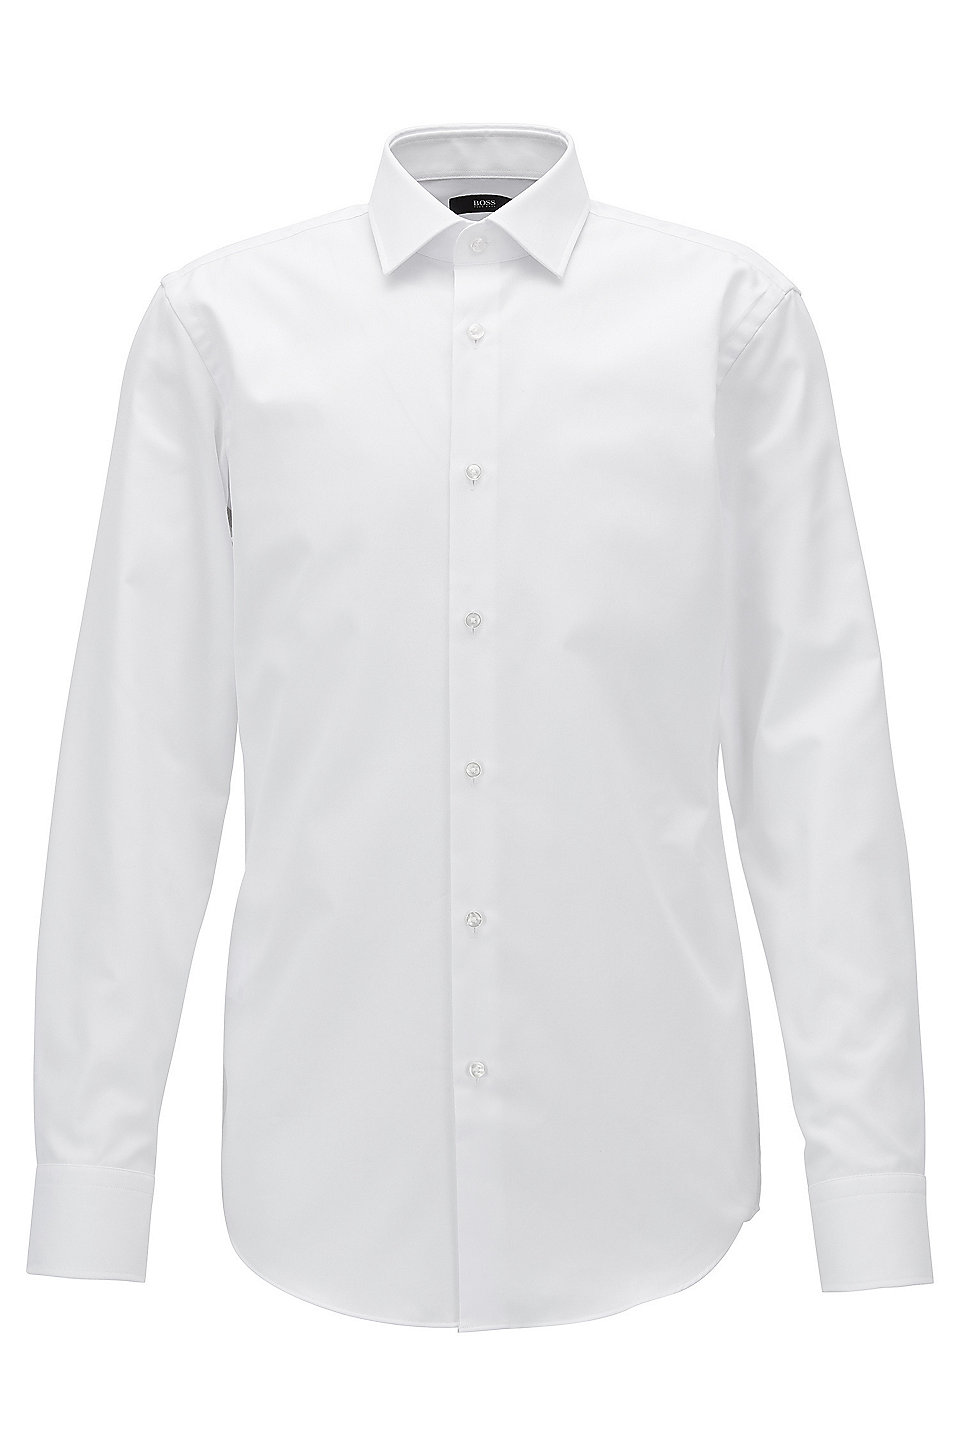 Slim-fit micro-check cotton shirt with Fresh Active finish BOSS Cheap With Credit Card dz64ut7RO